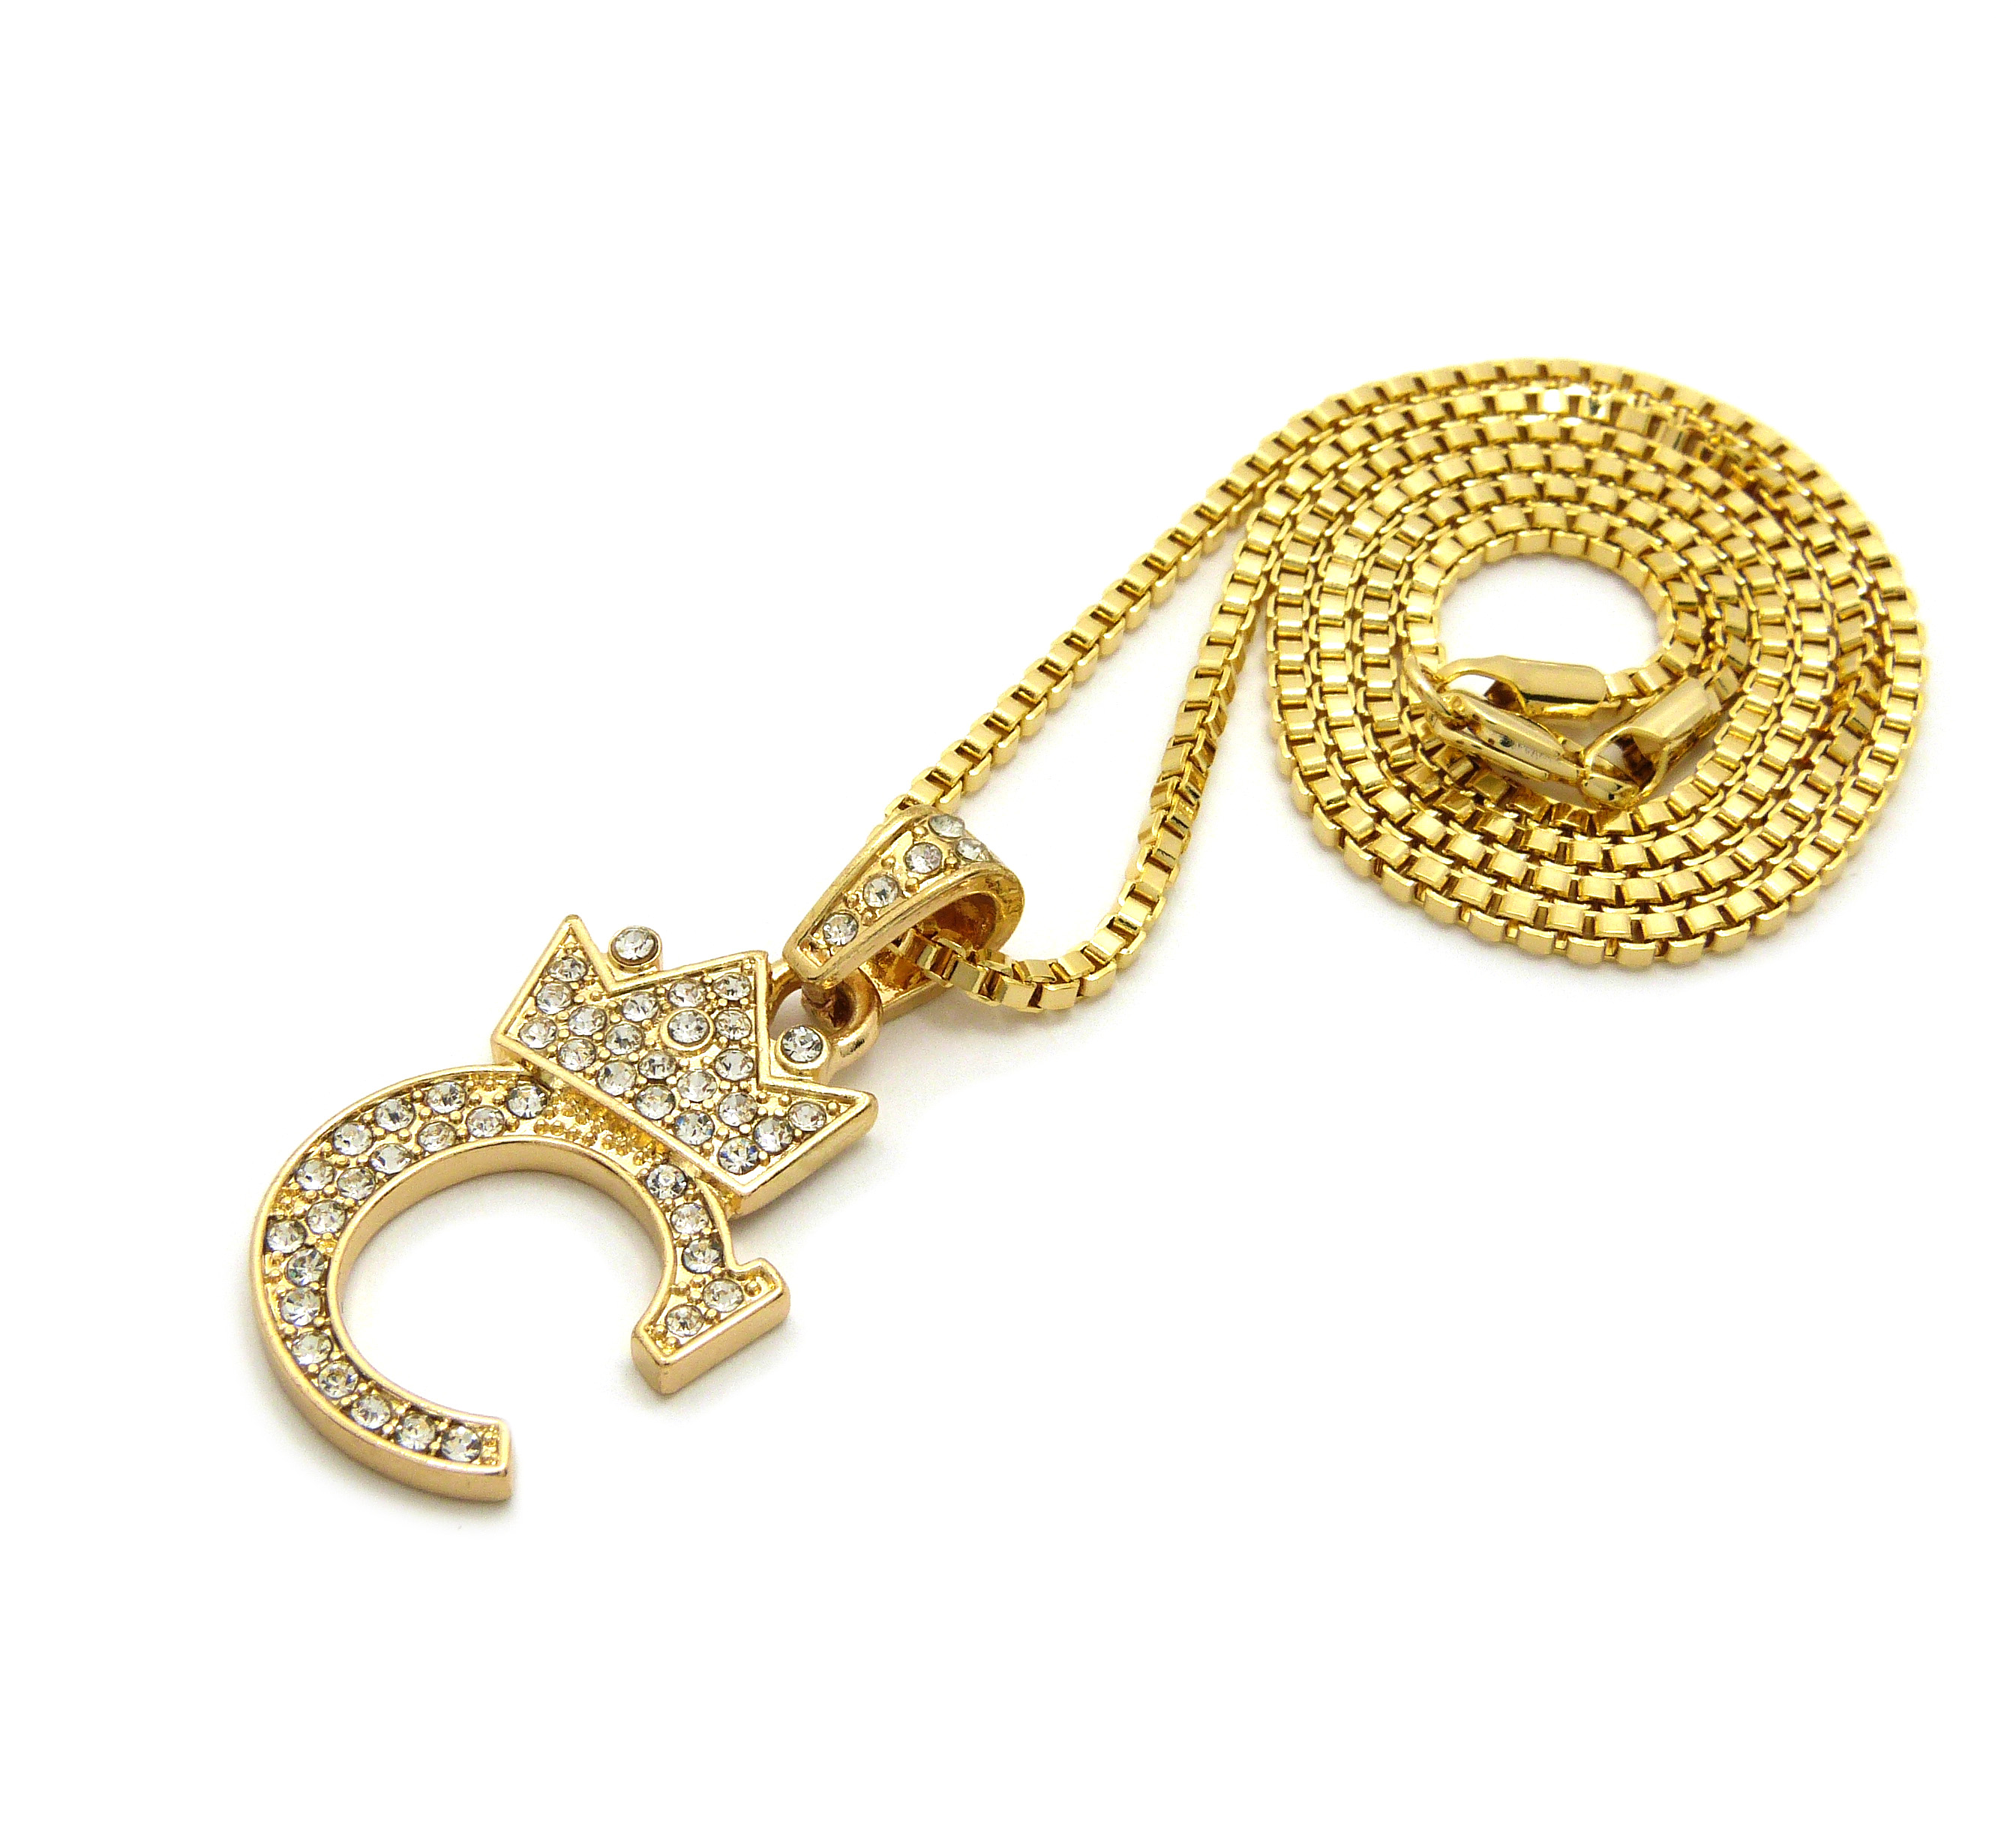 Small Gold Iced Out Boxing Glove MMA Pendant Chain